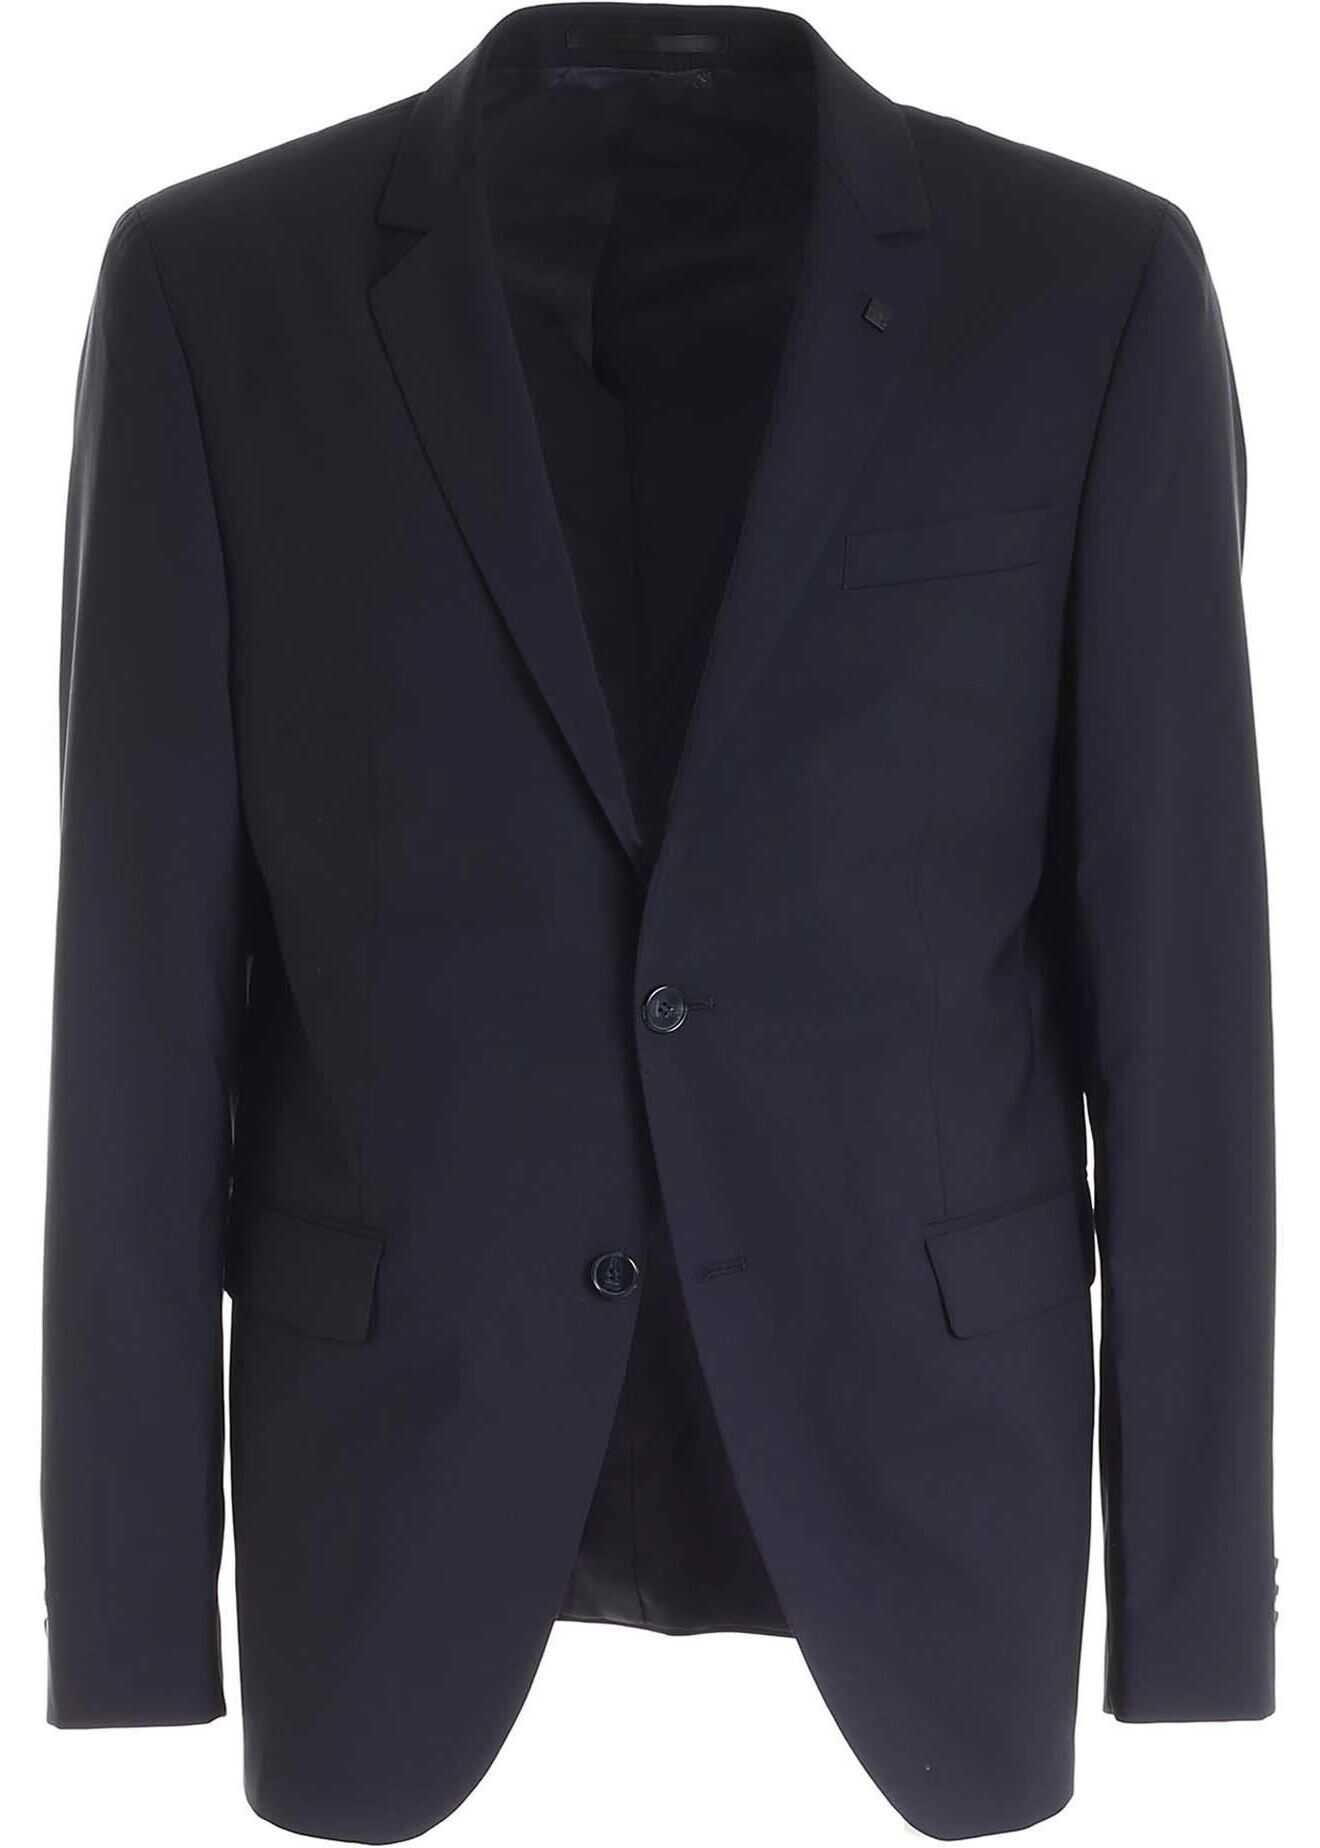 Karl Lagerfeld Two-Buttons Jacket In Blue Blue imagine